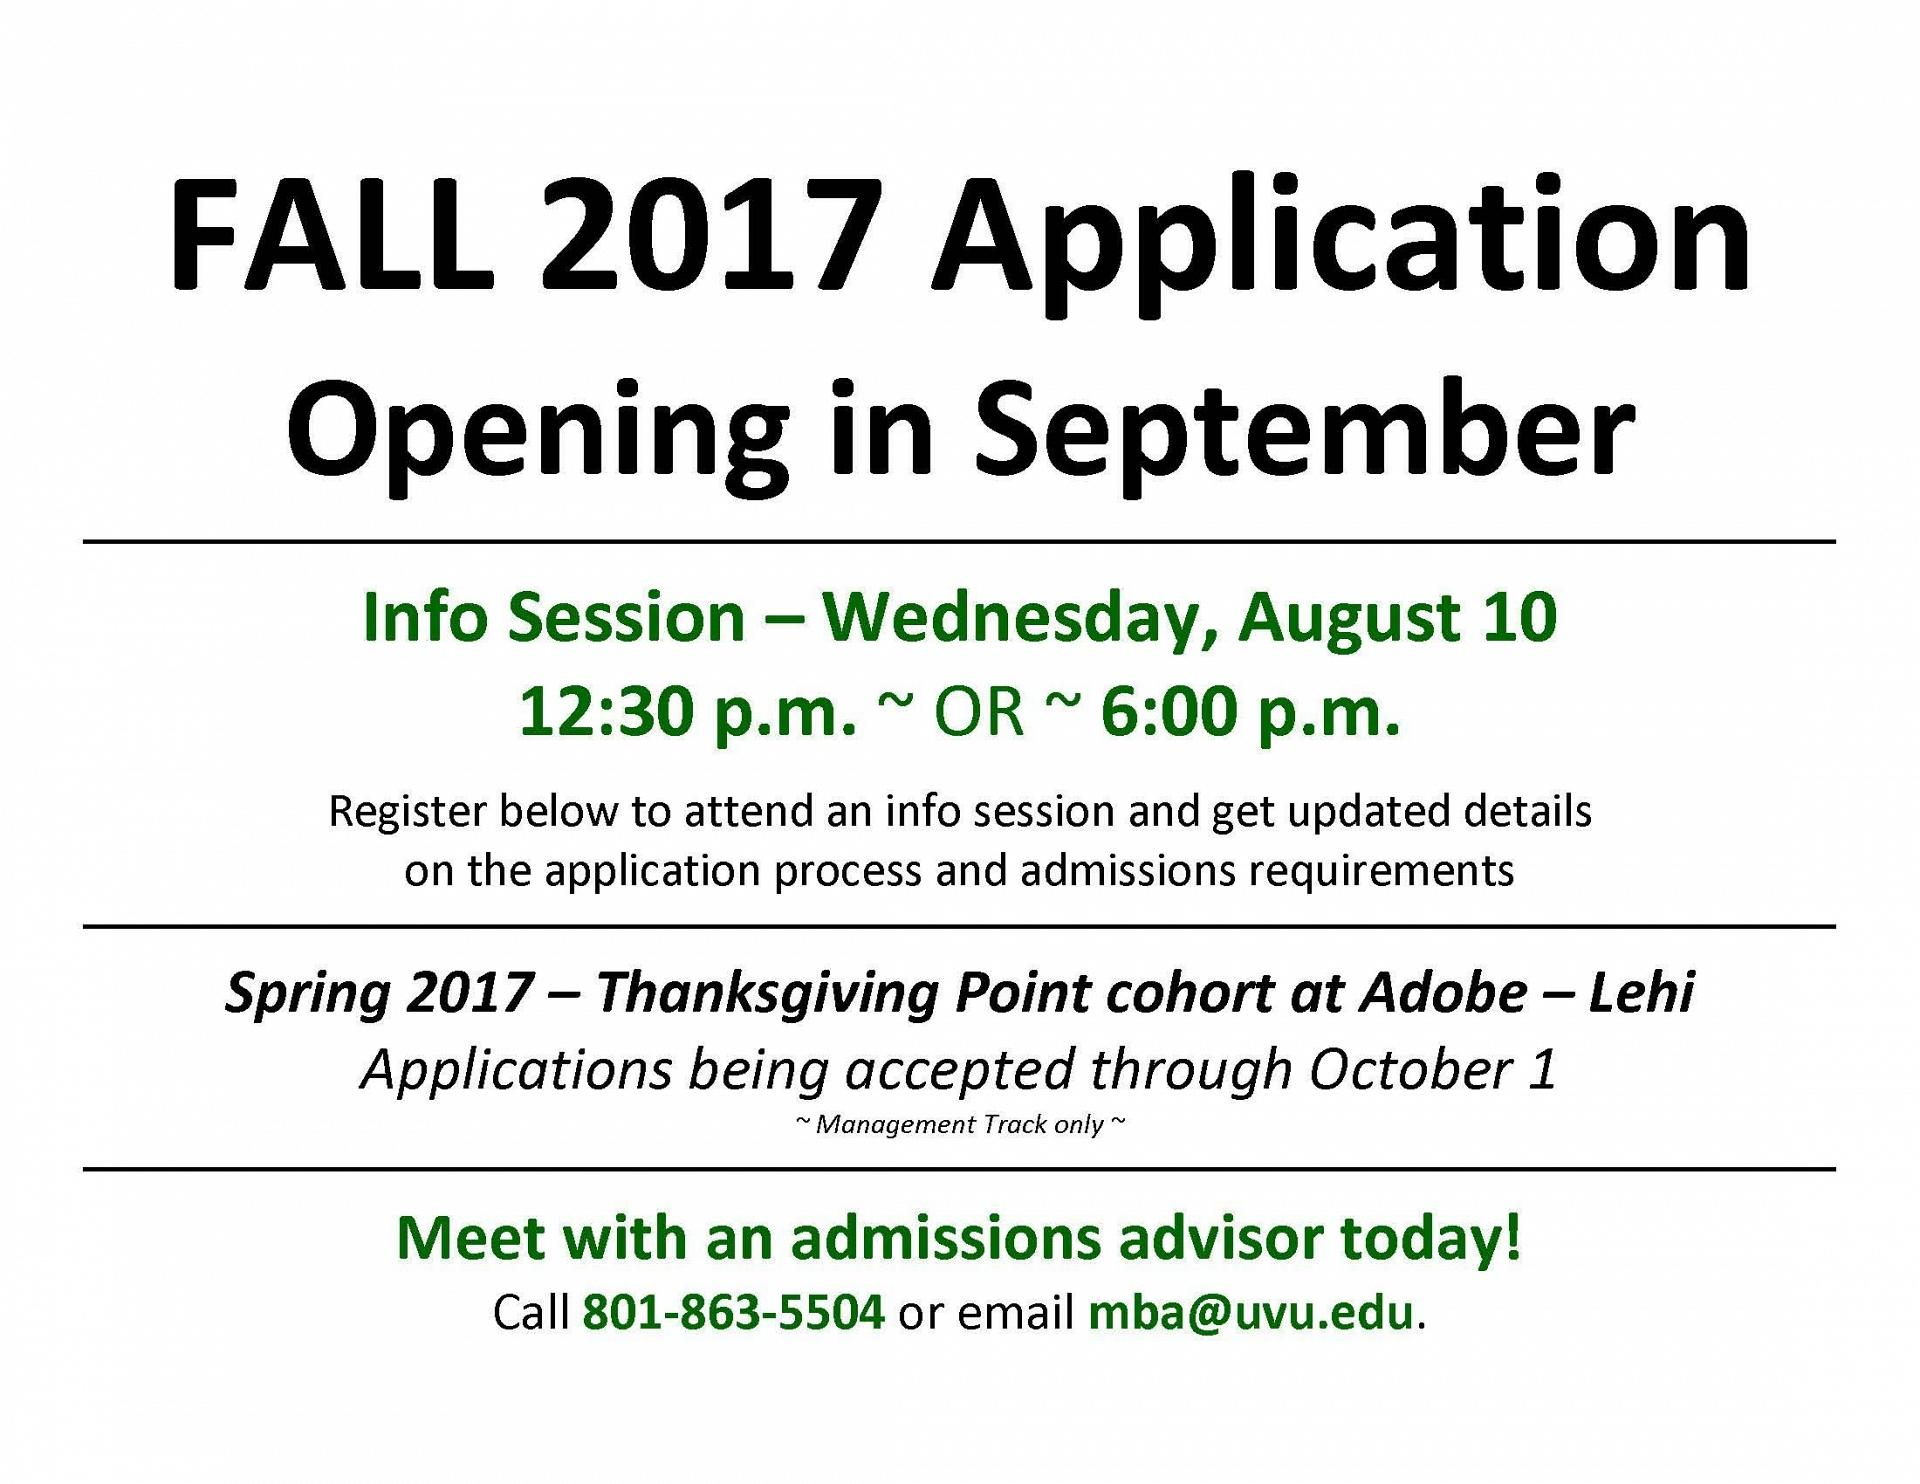 The application for the UVU MBA programs beginning Fall 2017 will be opening in September. Come to an information session on Wednesday, August 10 at 12:30 p.m. or 6:00 p.m.